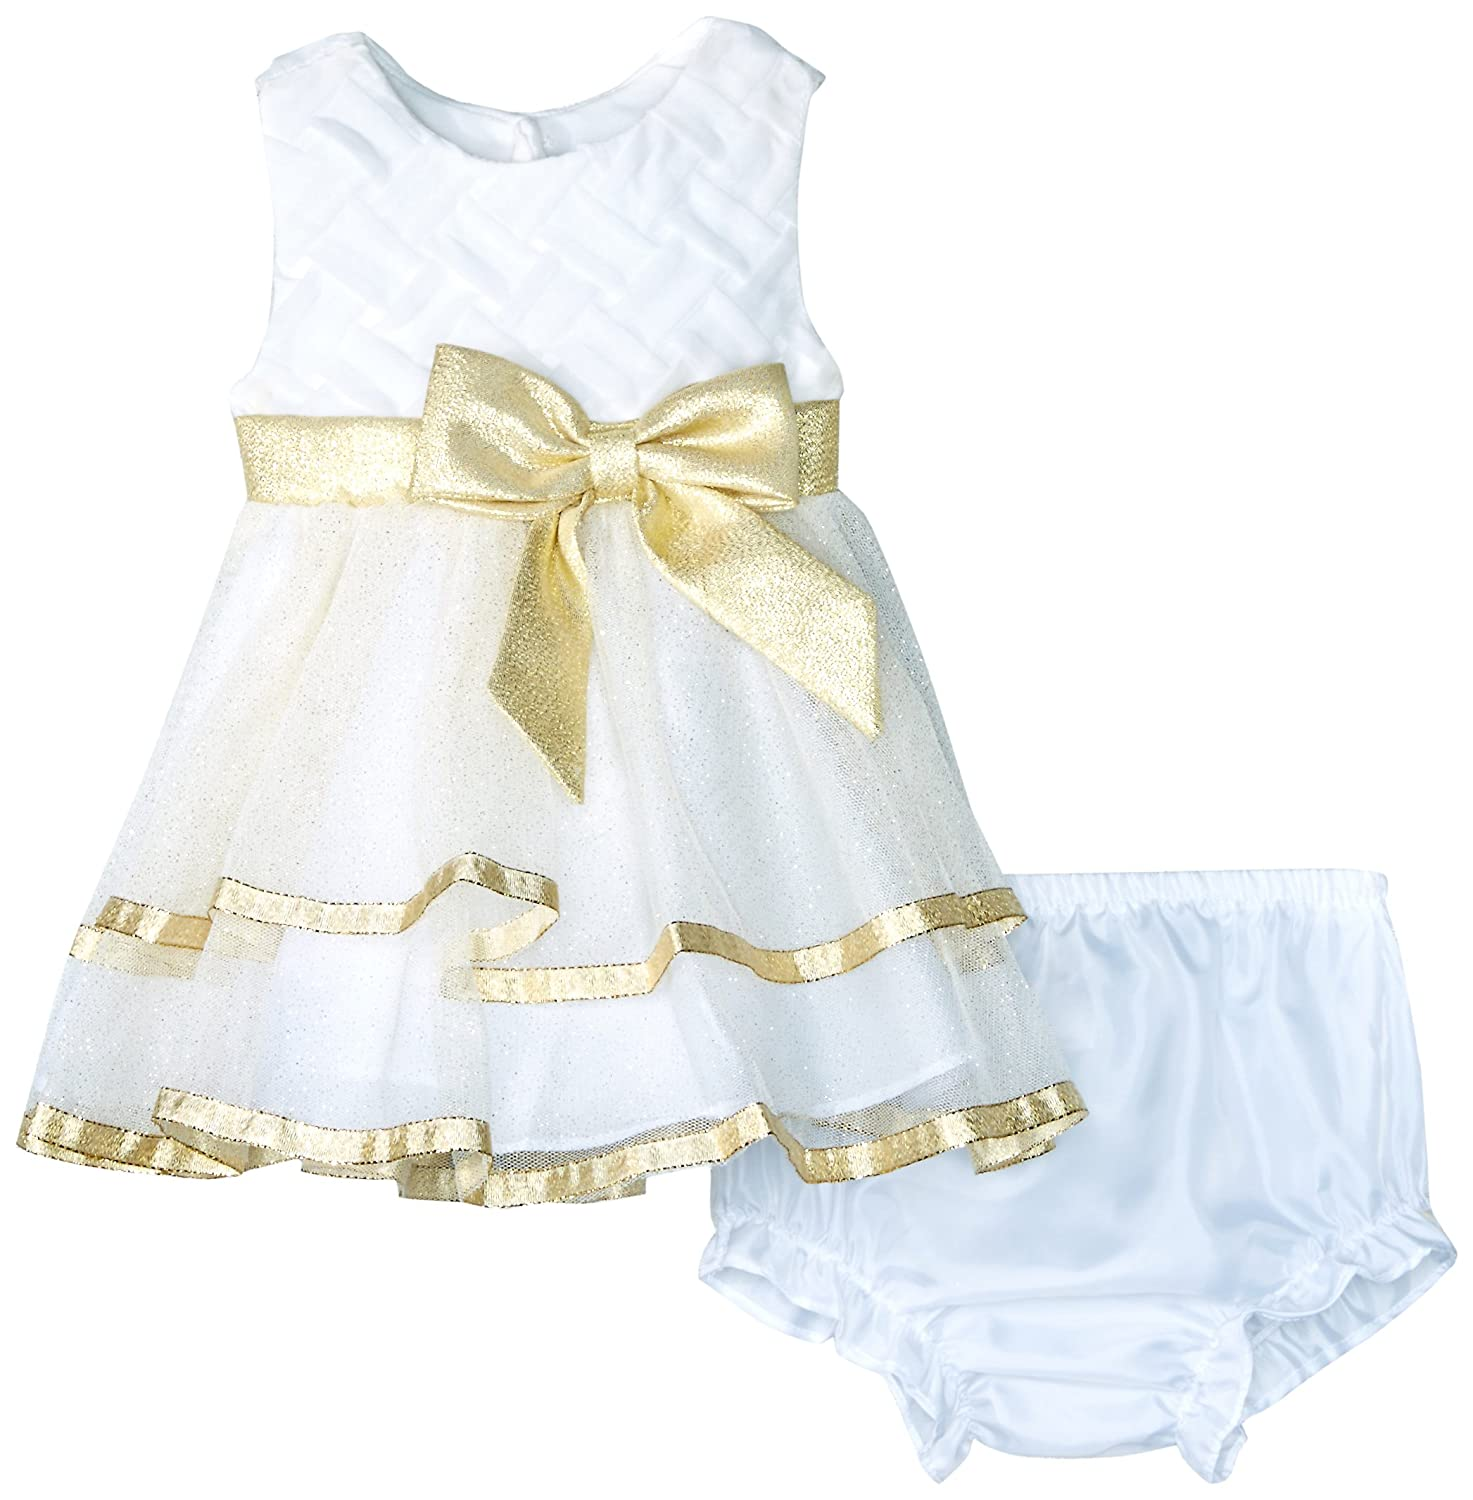 83dc1e9729da Amazon.com: Rare Editions Baby Girls' Glitter Mesh Special Occasion Dress,  Ivory/Gold 9 Months: Clothing